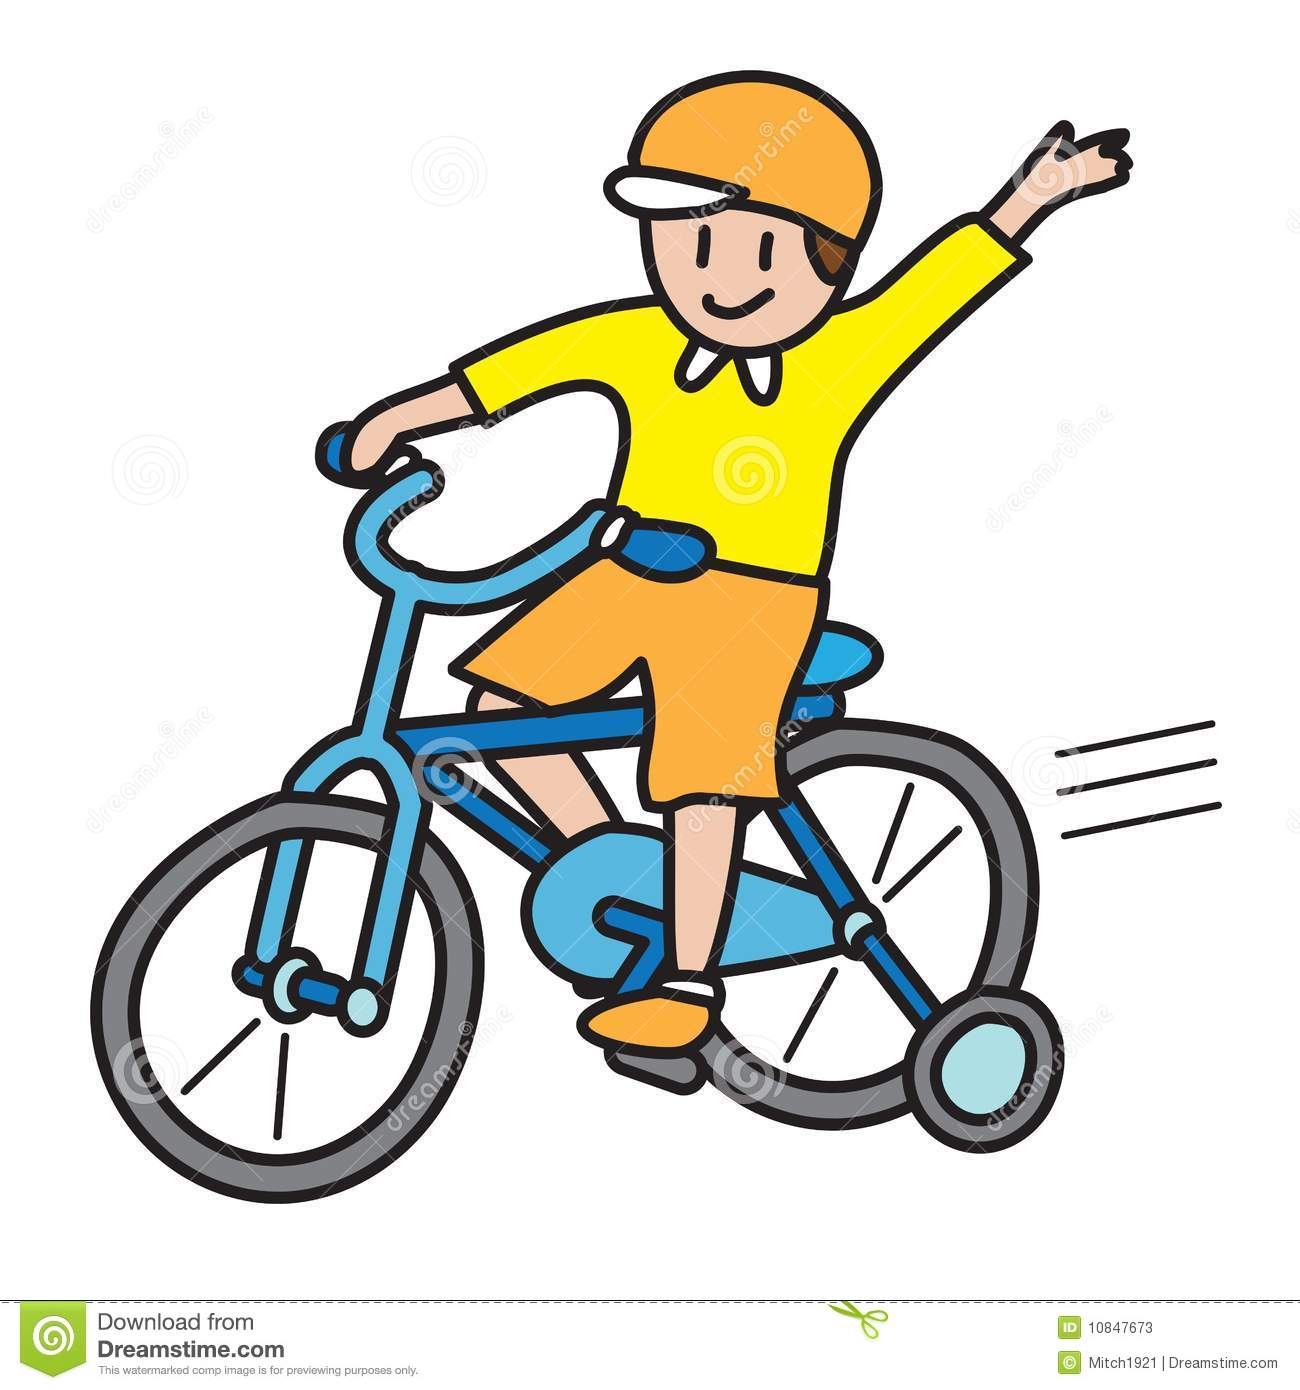 Bike Riding Clipart.